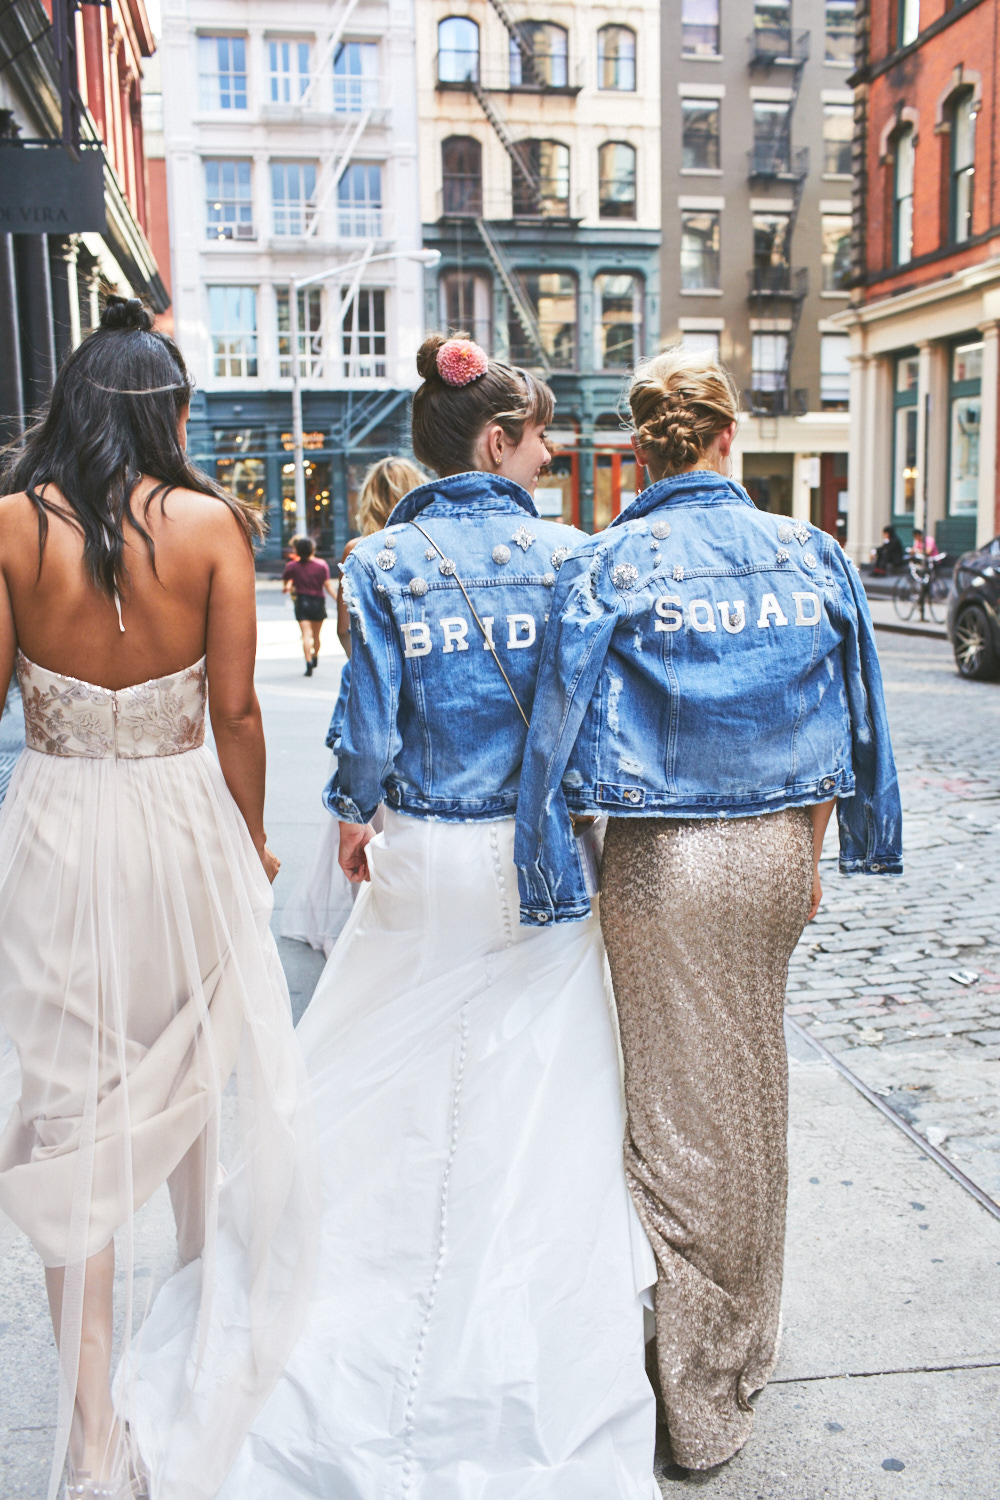 bride and bridesmaids in sequins walking down a street in NYC wearing denim jackets that say bride squad